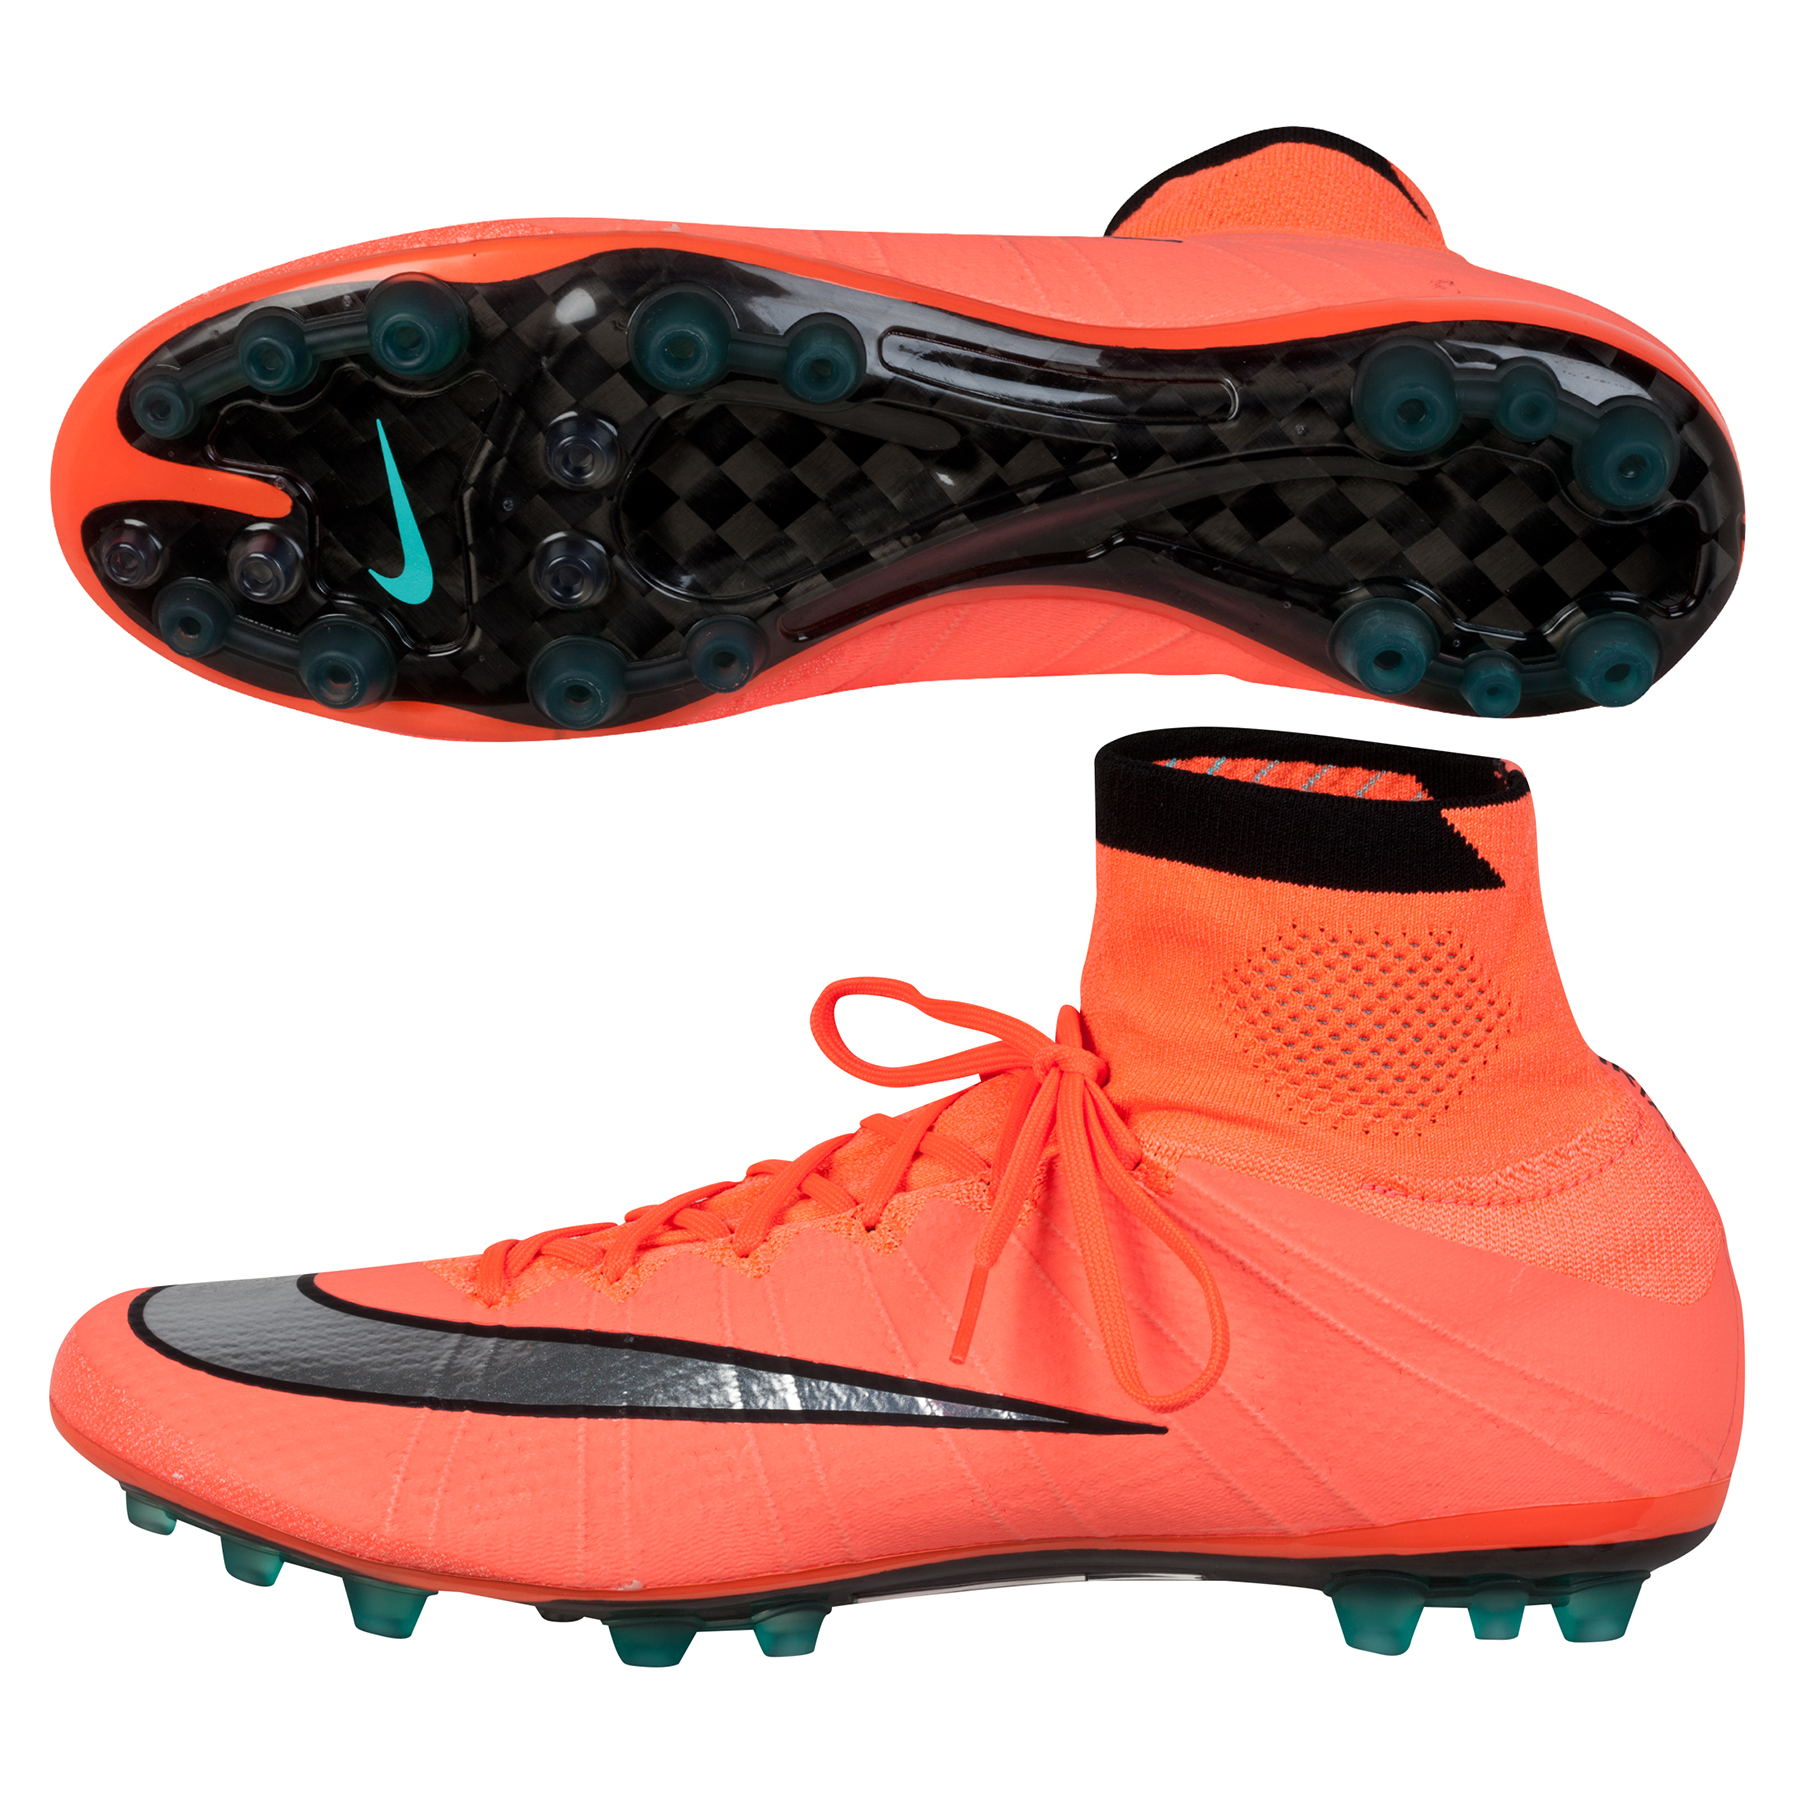 Nike Mercurial Superfly Artificial Grass Football Boots Orange